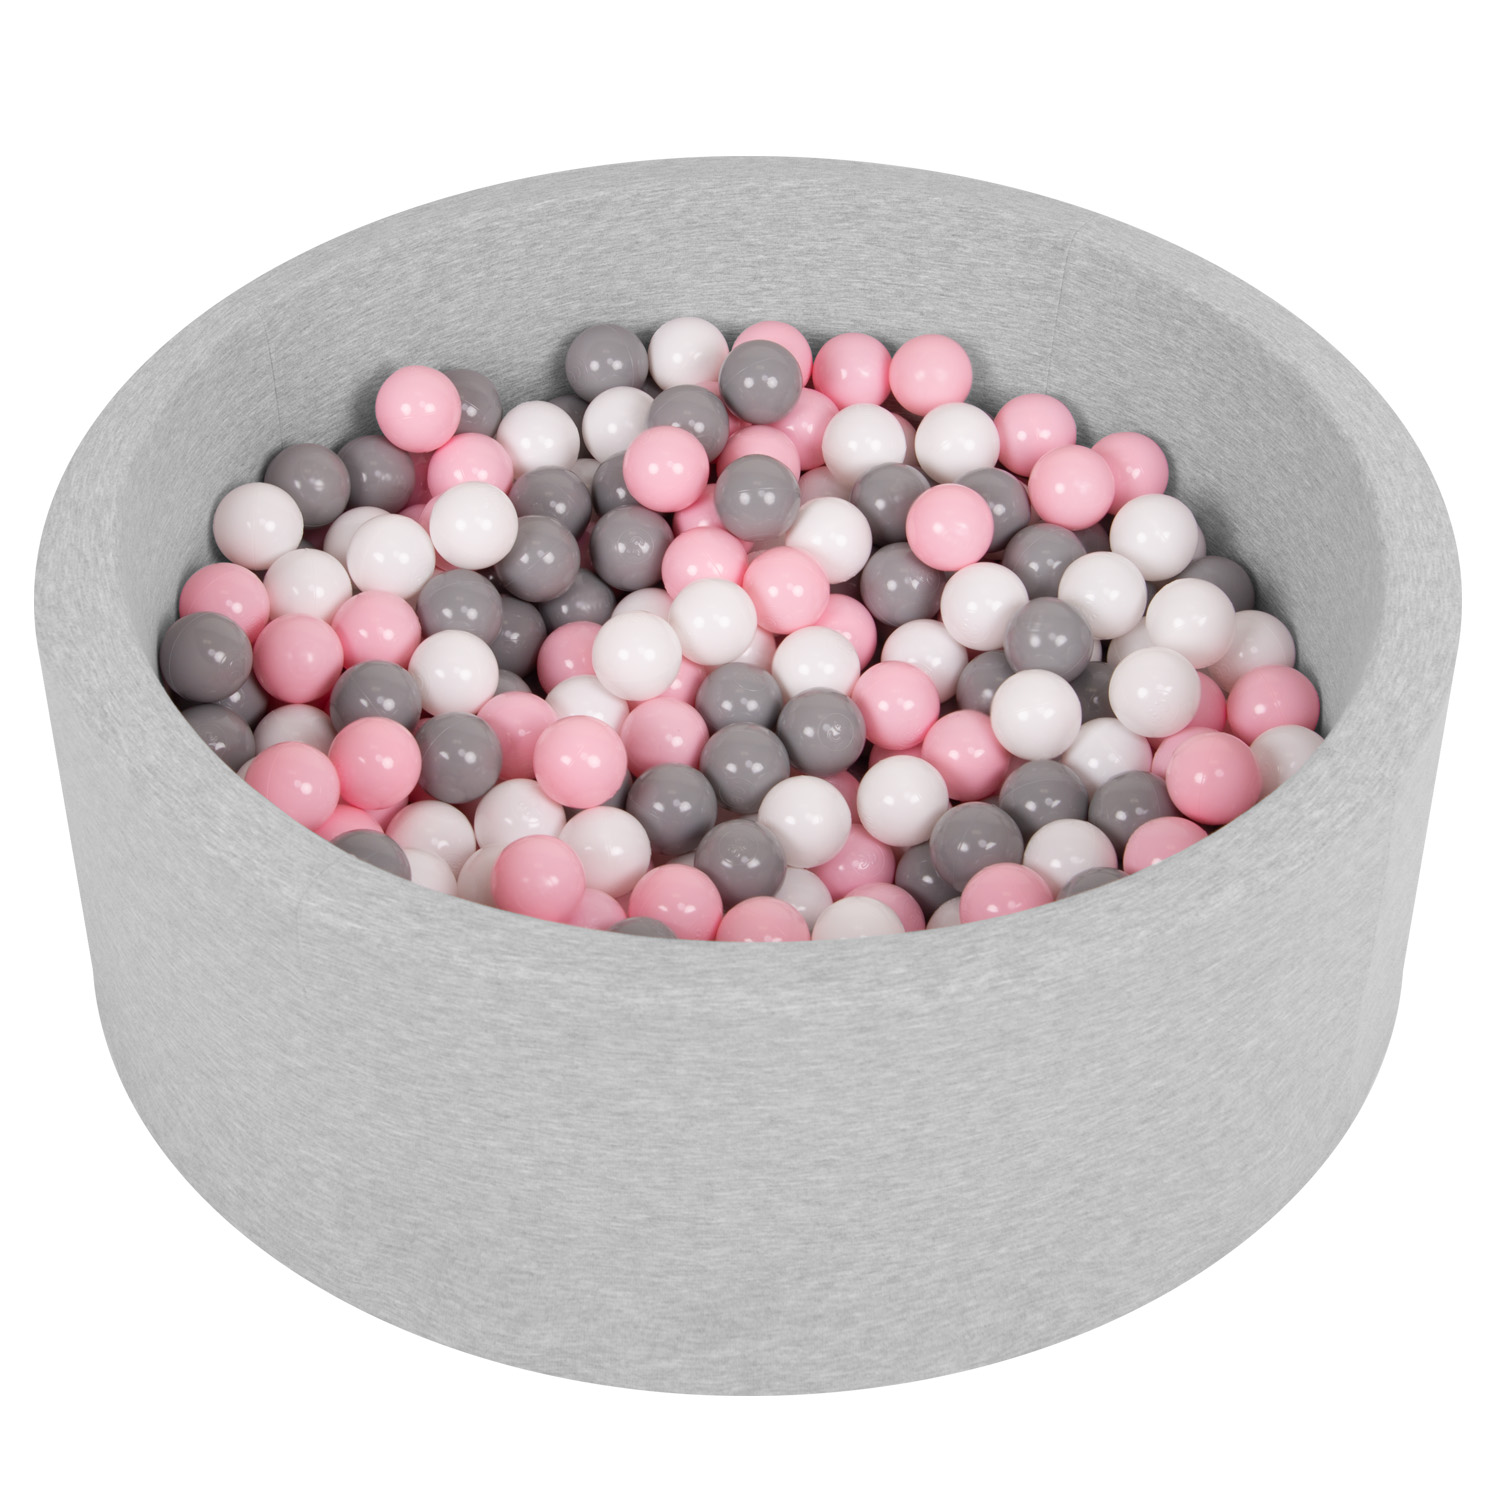 Selonis-Soft-Ball-Pit-Pool-Round-90x30cm-for-Baby-Toddler-200-Balls-Foam miniatuur 16